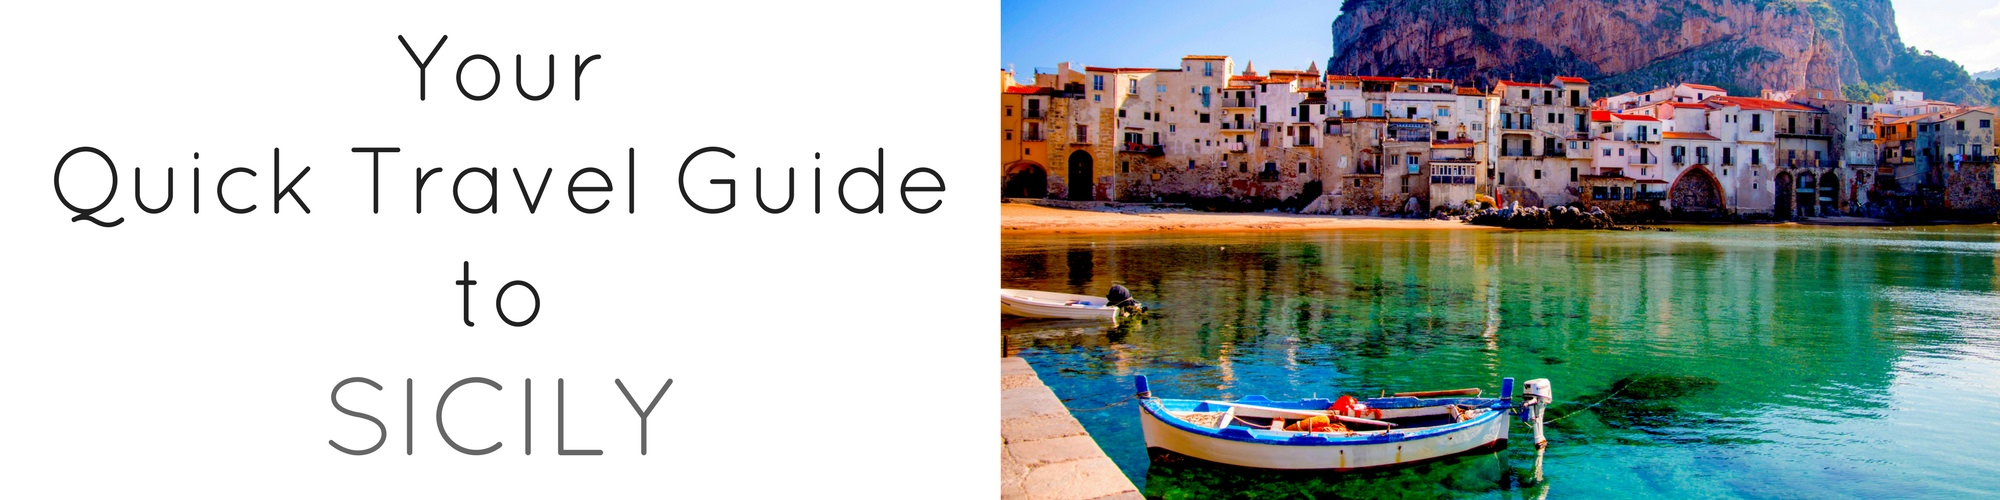 Quick Travel Guide to Sicily